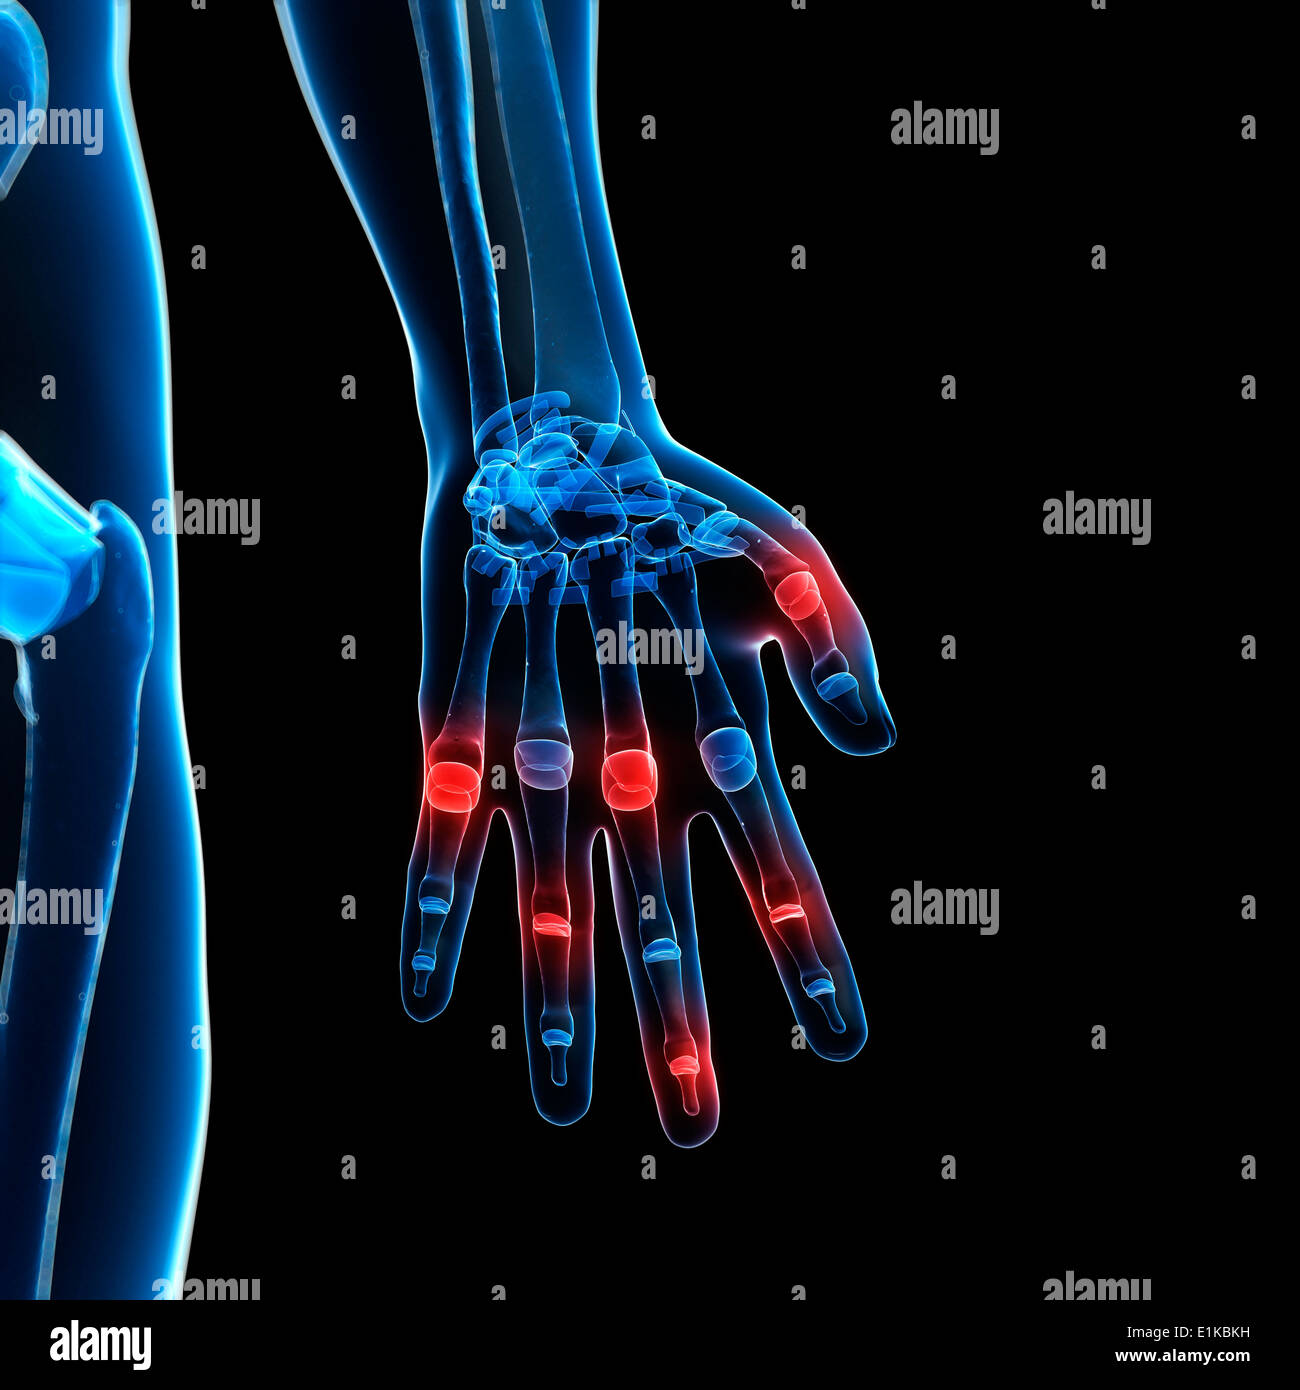 Human finger joints computer artwork. - Stock Image